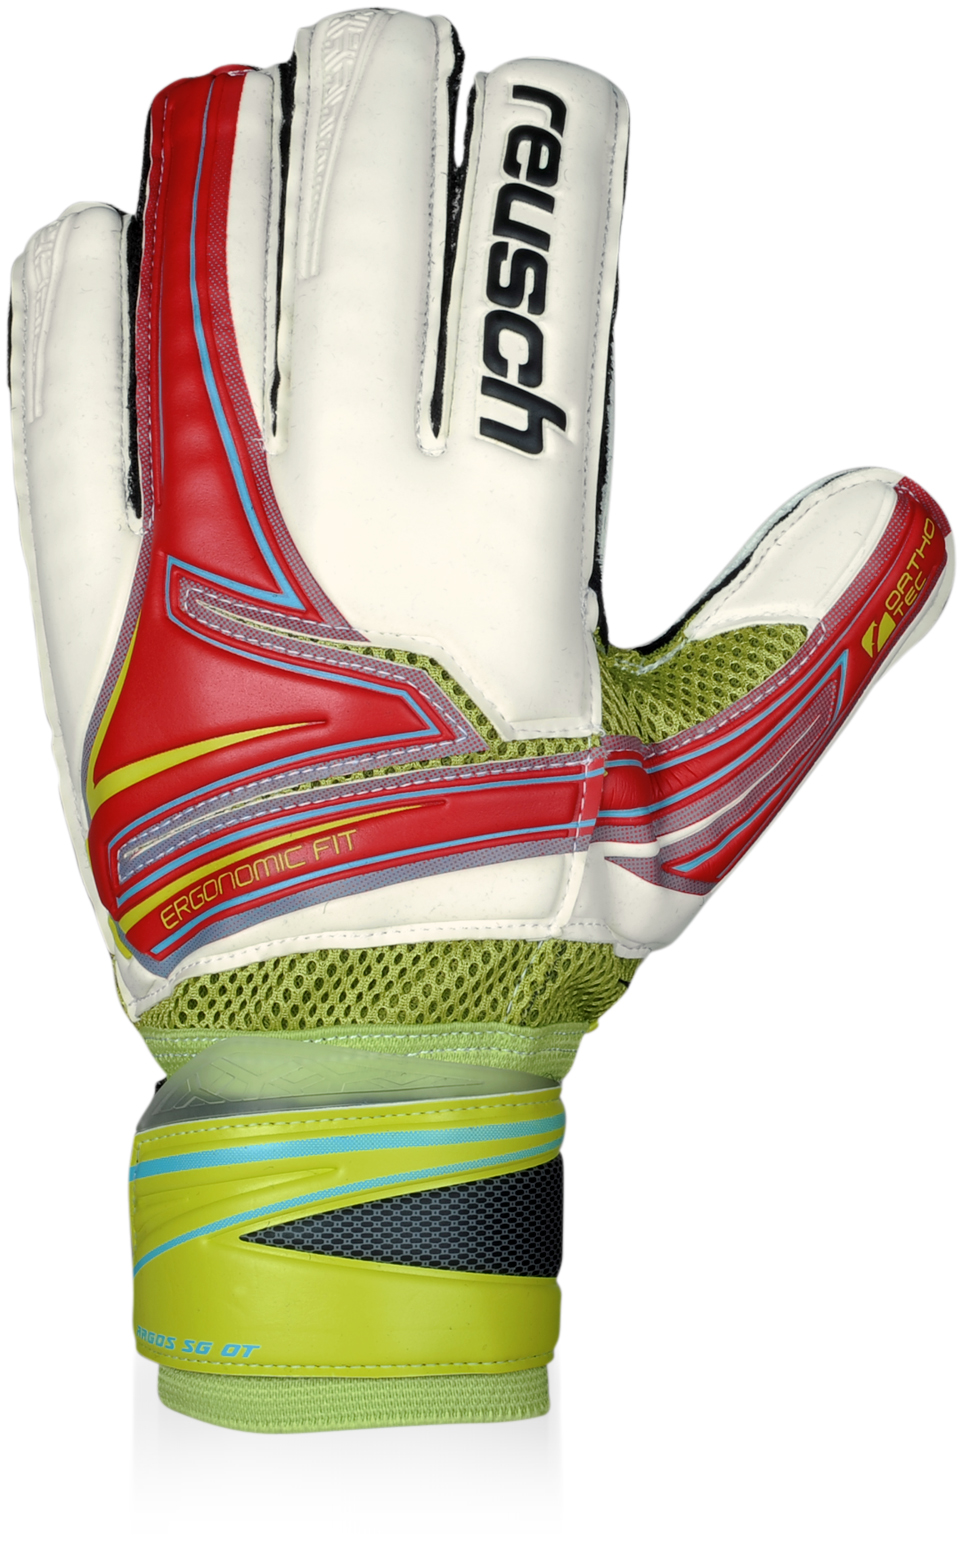 Reusch Argos Sg Orthotec Goalkeeper Gloves (red)